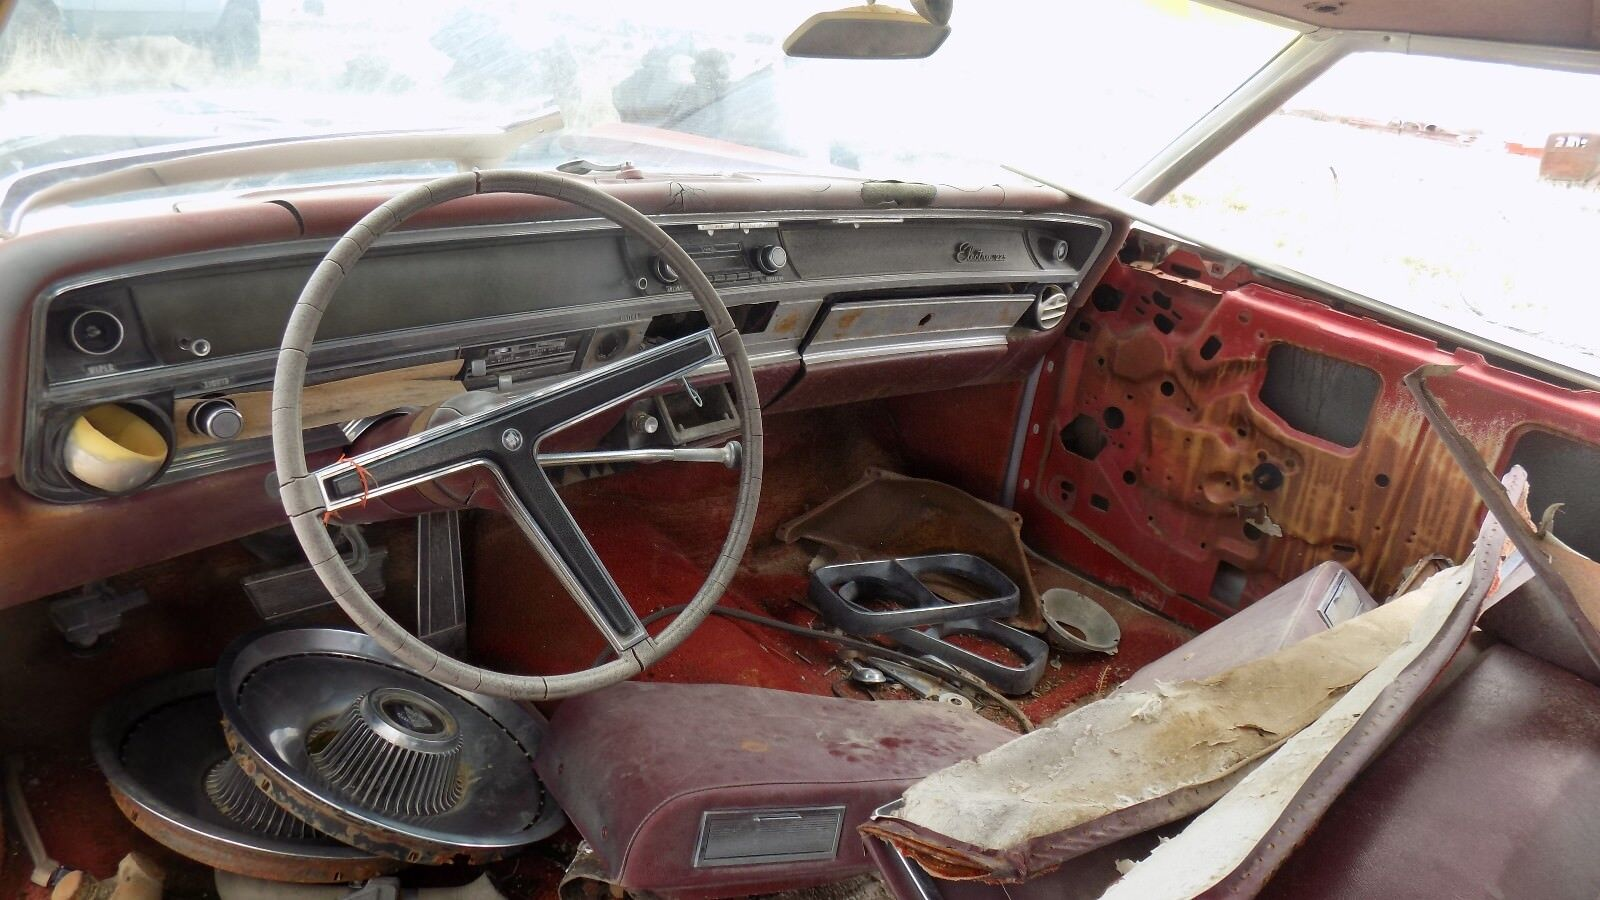 Used Buick Electra Mouldings And Trim For Sale 1961 Convertible 1967 225 2 Door Left Upper Hinge Dry Desert Western Part